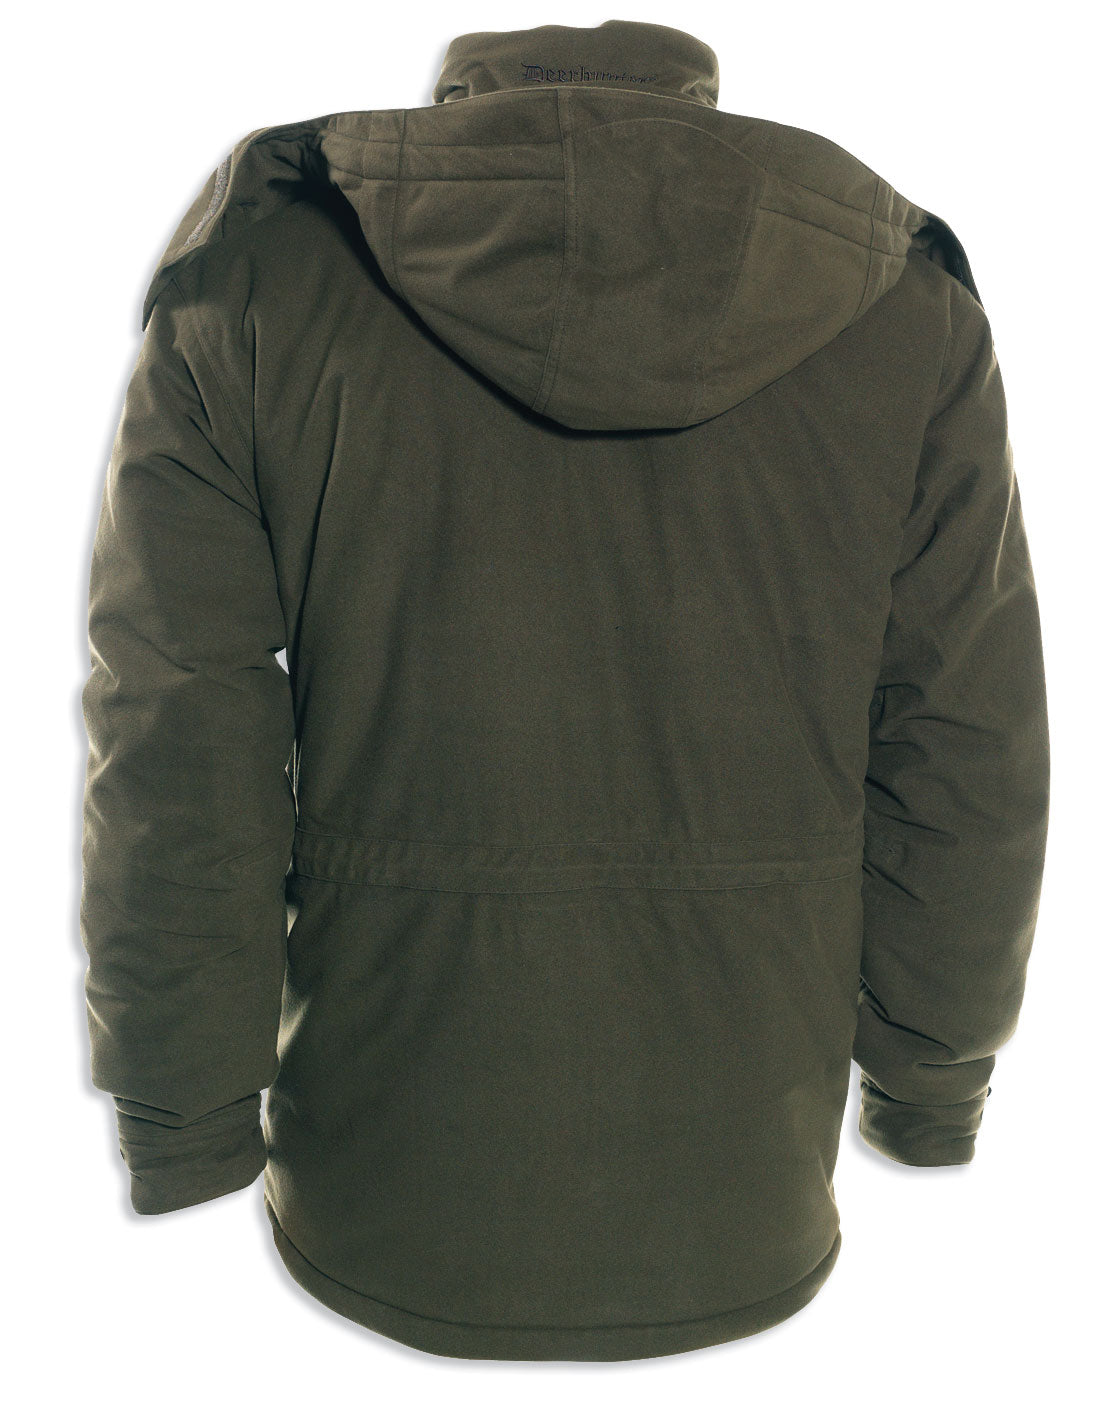 Beluga Deerhunter Recon Arctic Jacket